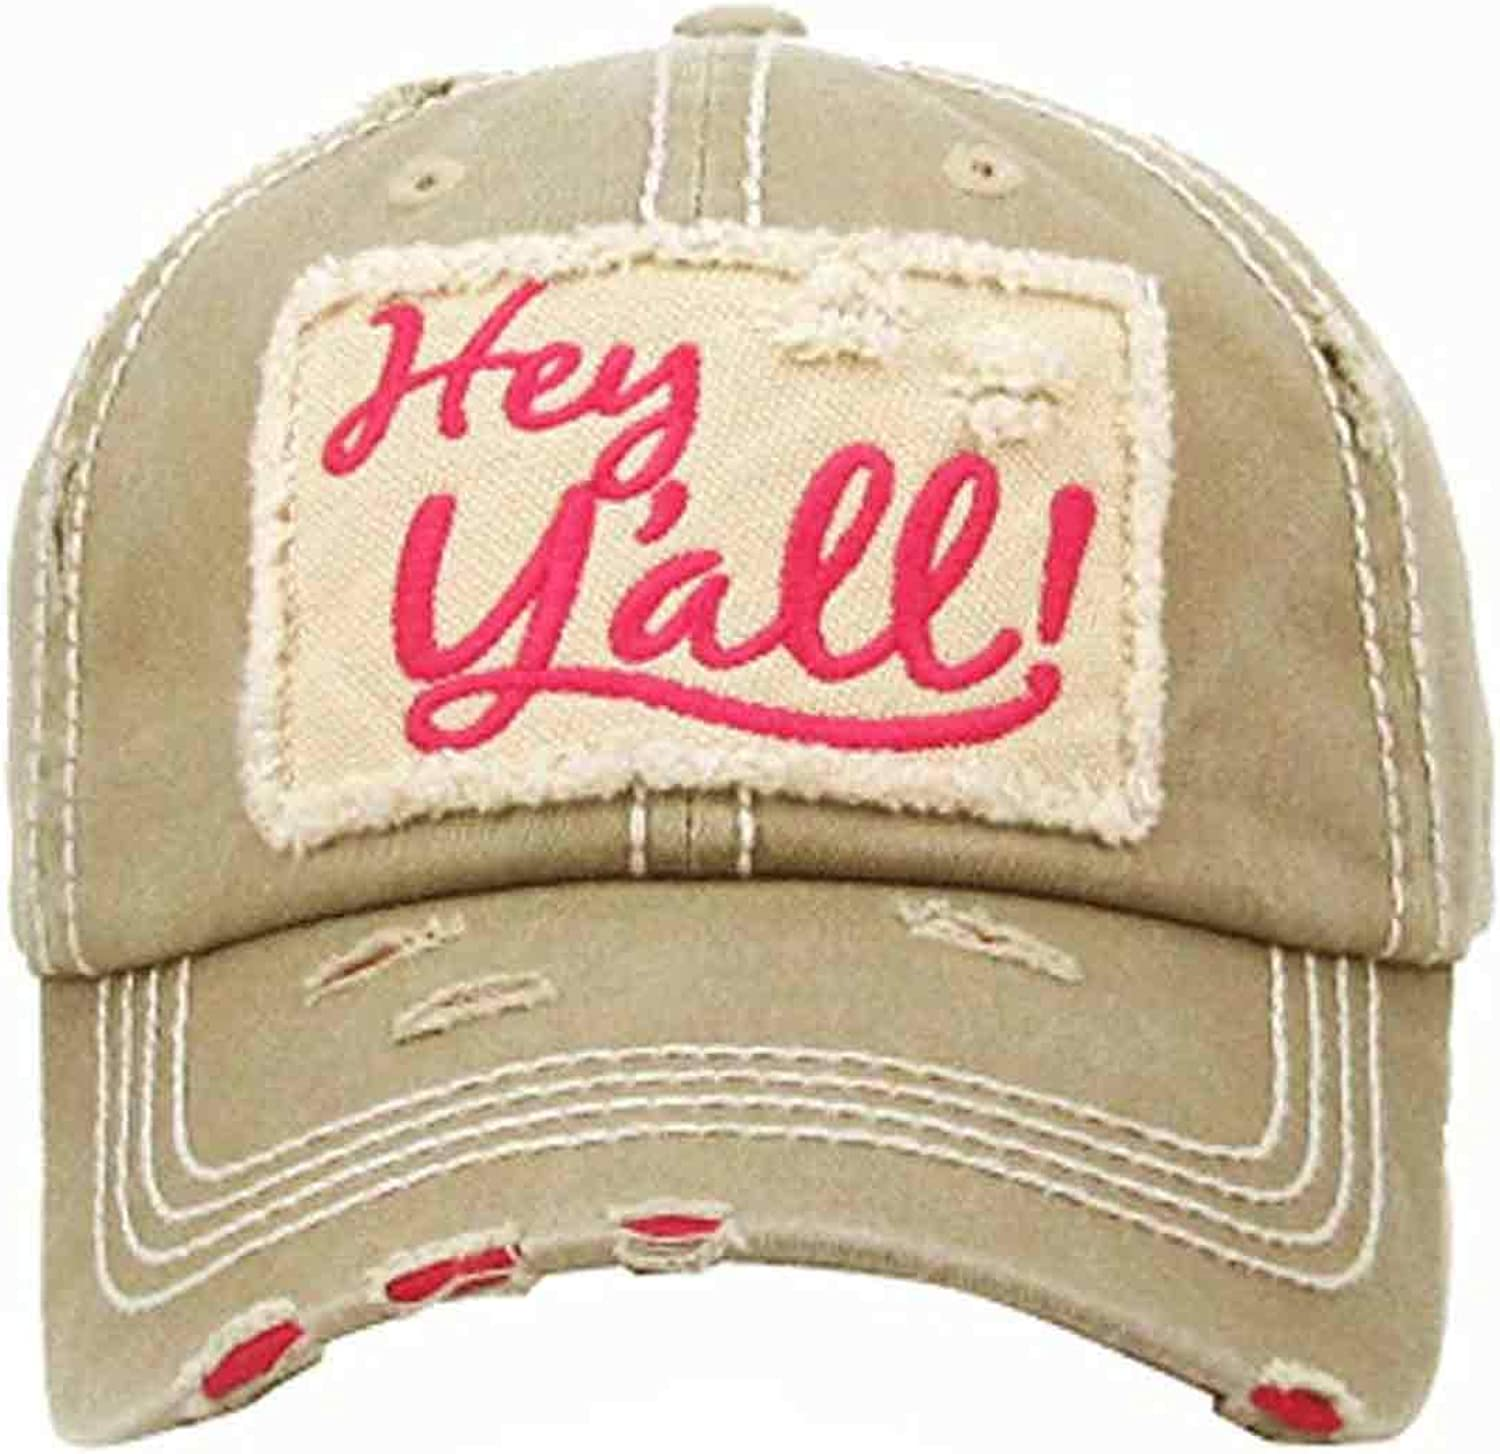 Kbethos Trading Women's Hey Y'all Southern Vintage Patch Baseball Hat Cap (Khaki)